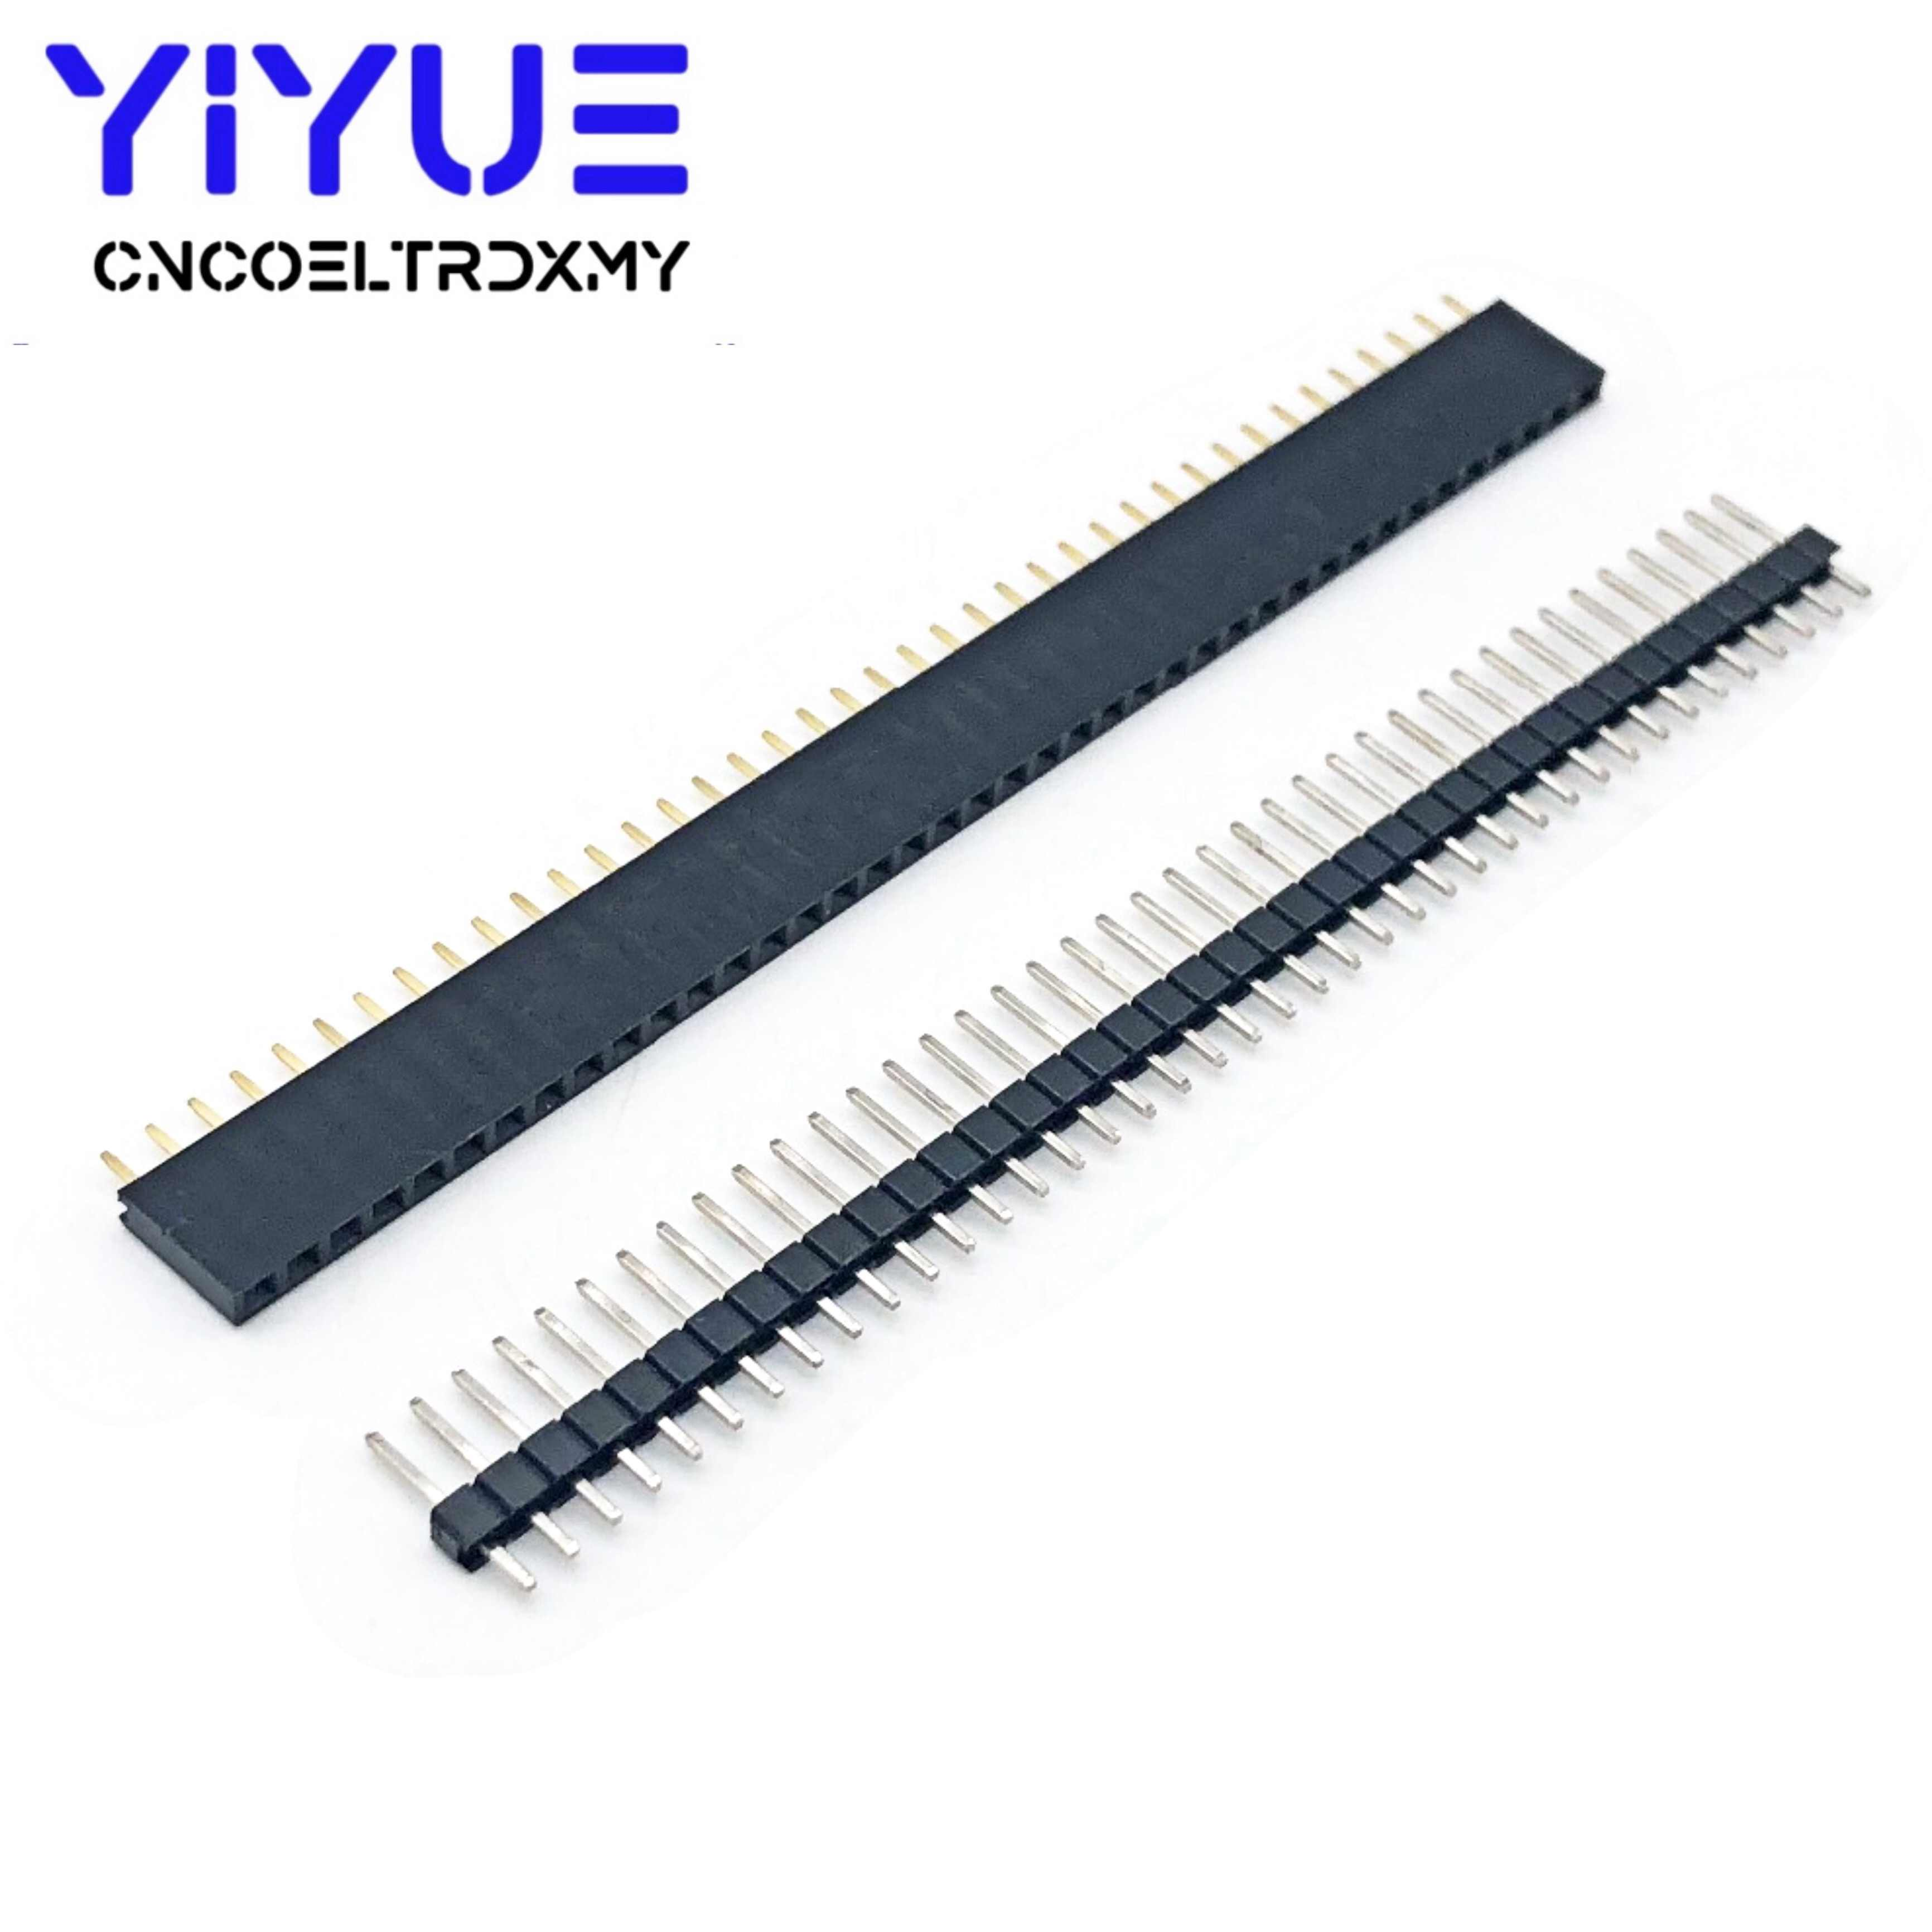 Pin Strip 2.54mm Pack 5 Pin Header 40 Way Straight 0.1 Pitch